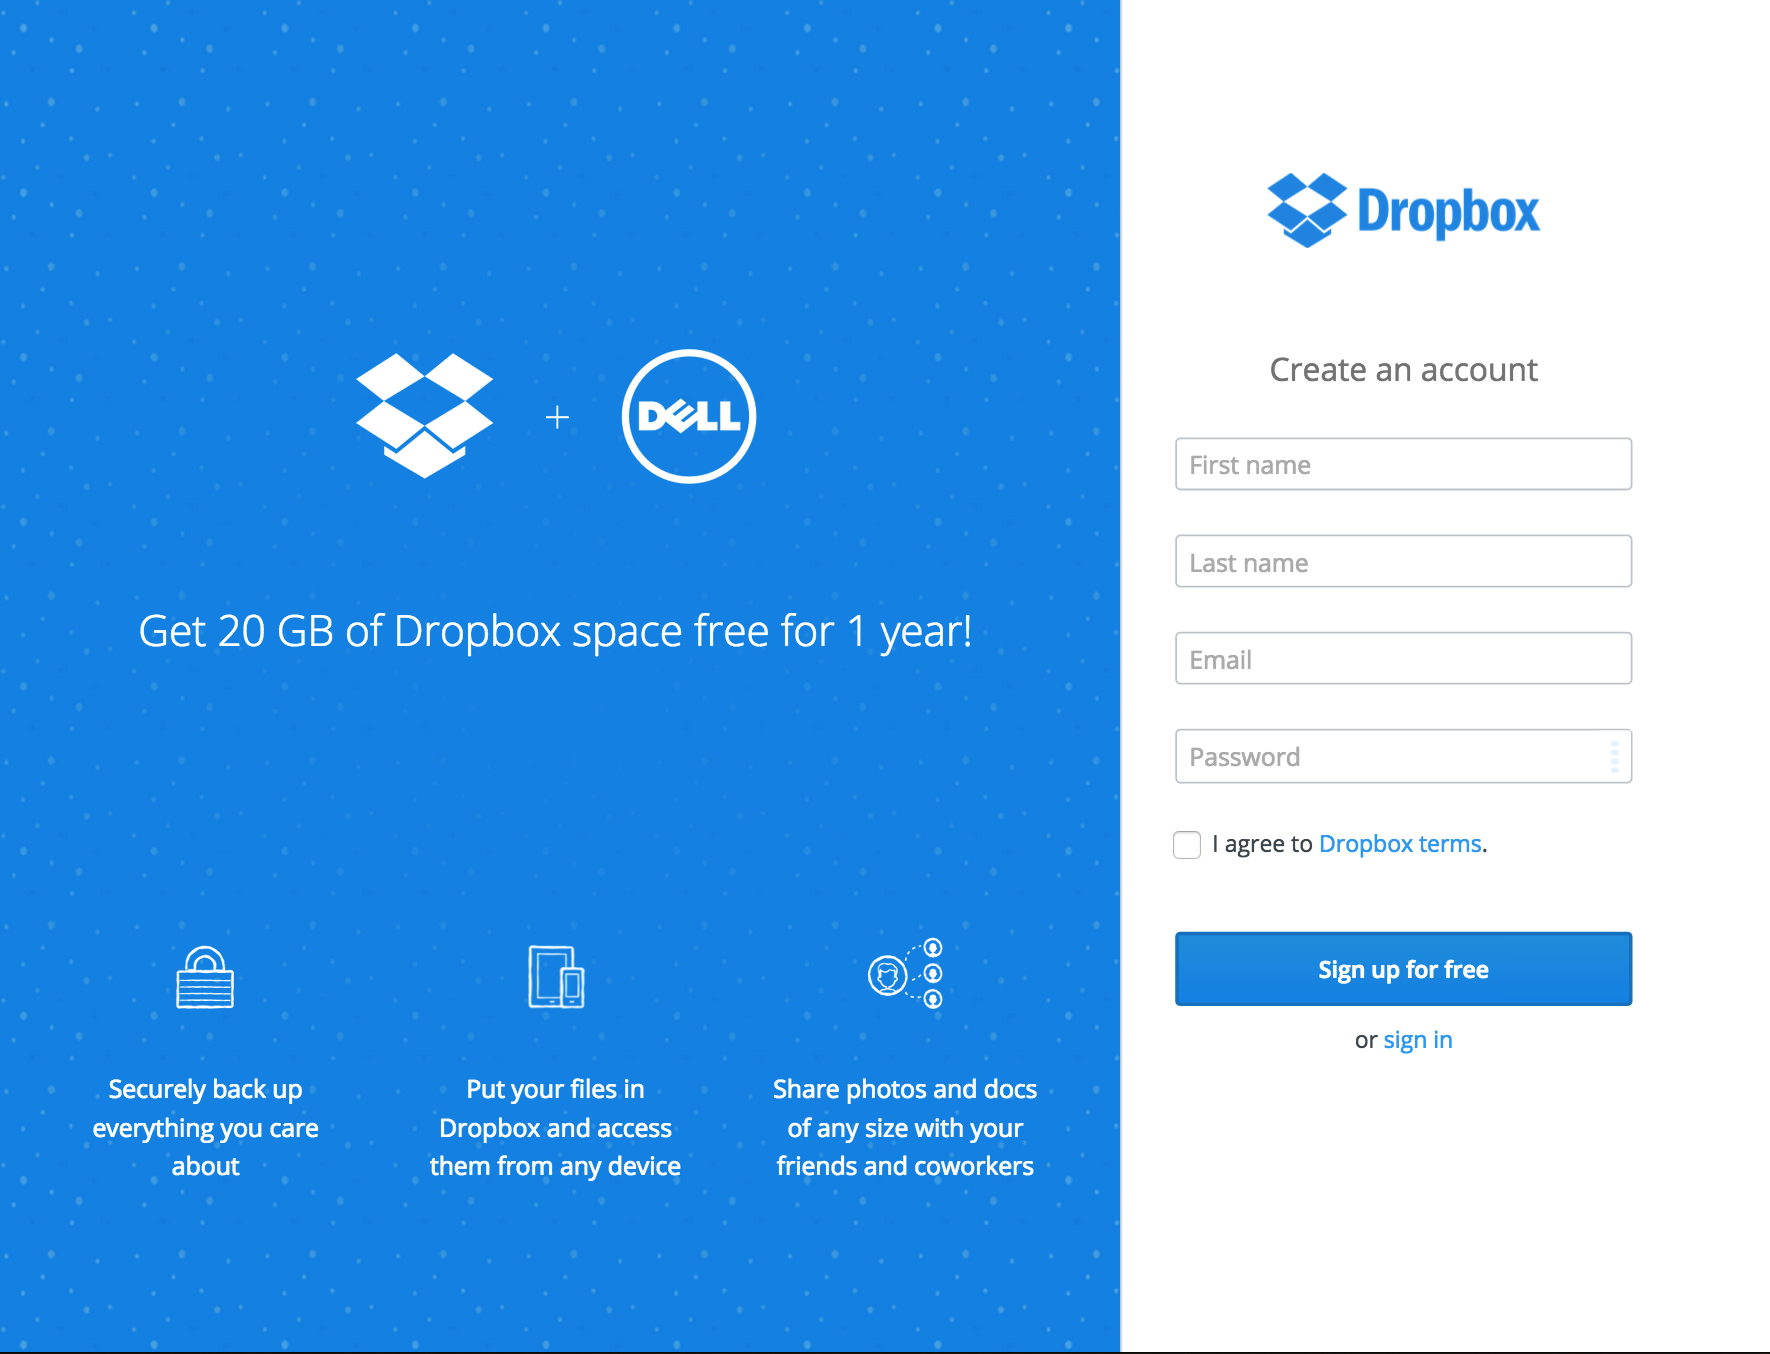 Is My Dell Device Eligible For The Dropbox Space Promotion